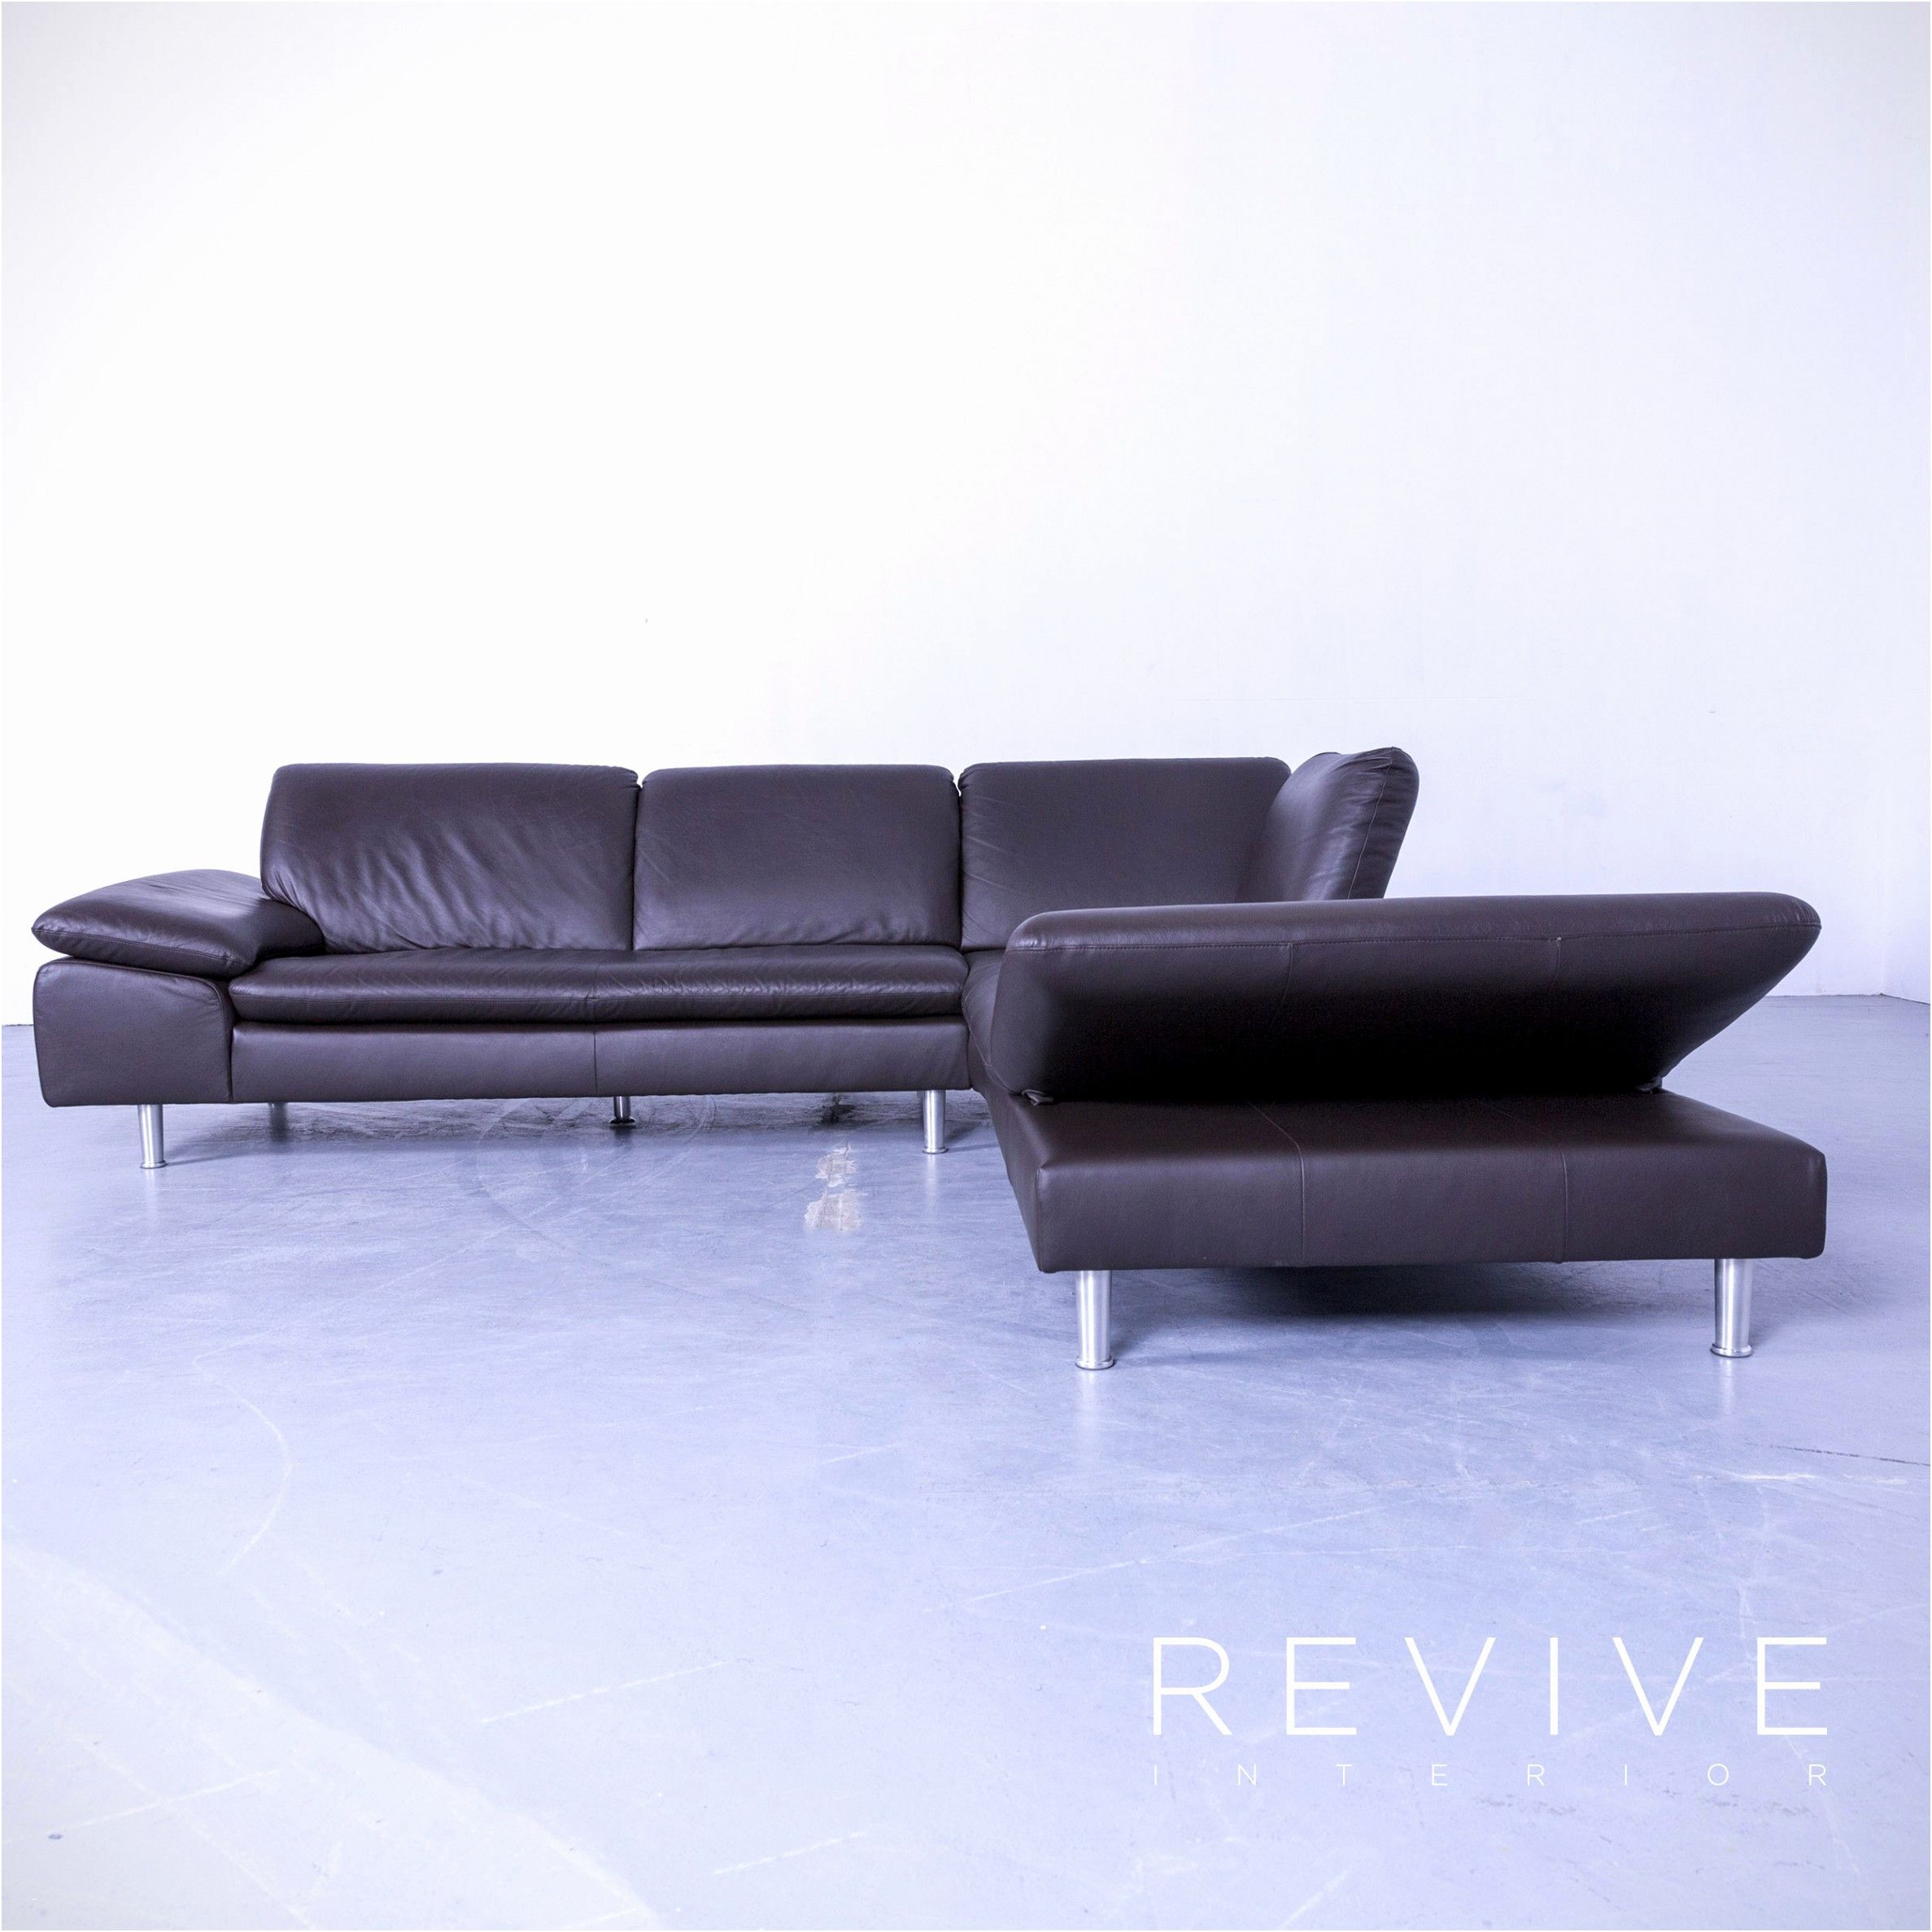 Top Sessel Bettfunktion In 2020 Purple Leather Sofas Sofa Leather Sectional